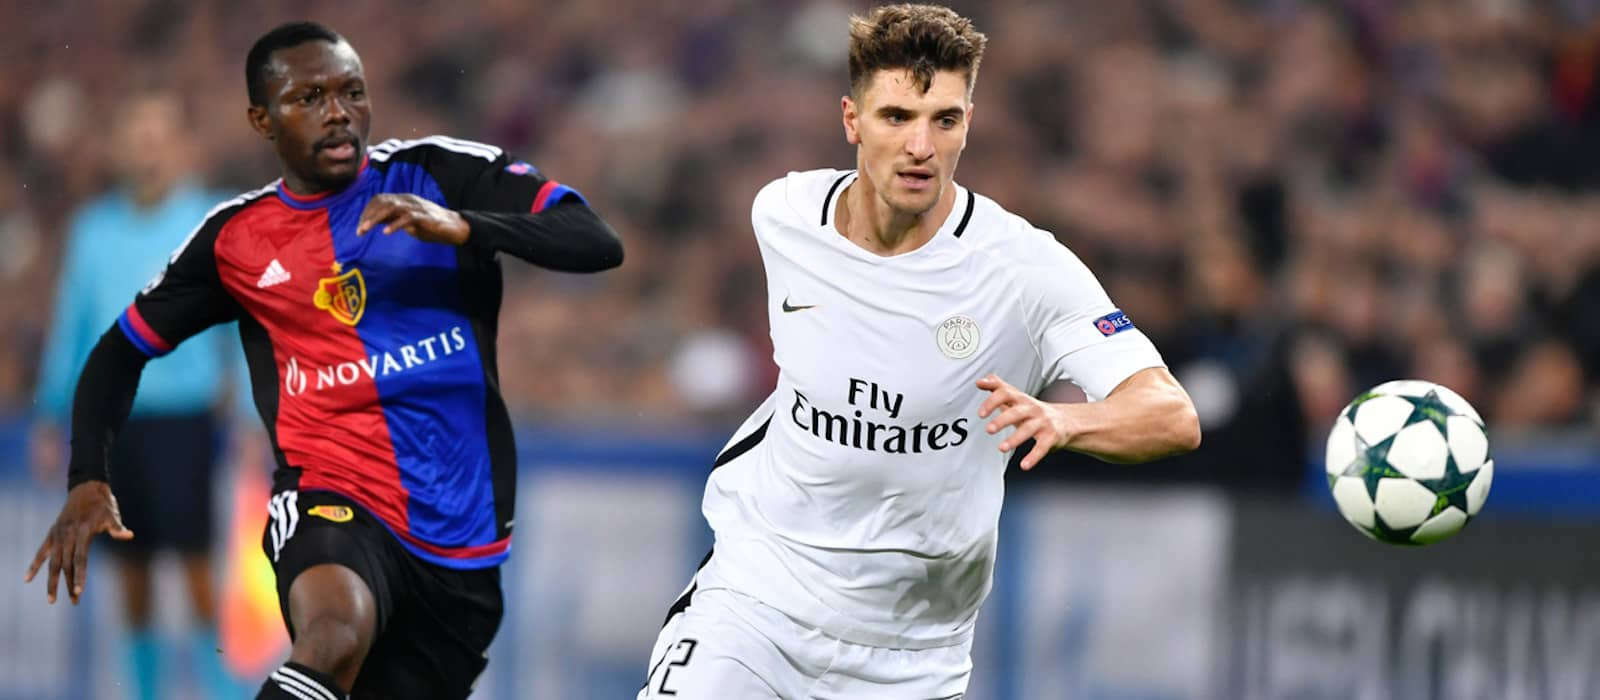 Paris Saint Germain defender Thomas Meunier reveals he's a big Man United fan